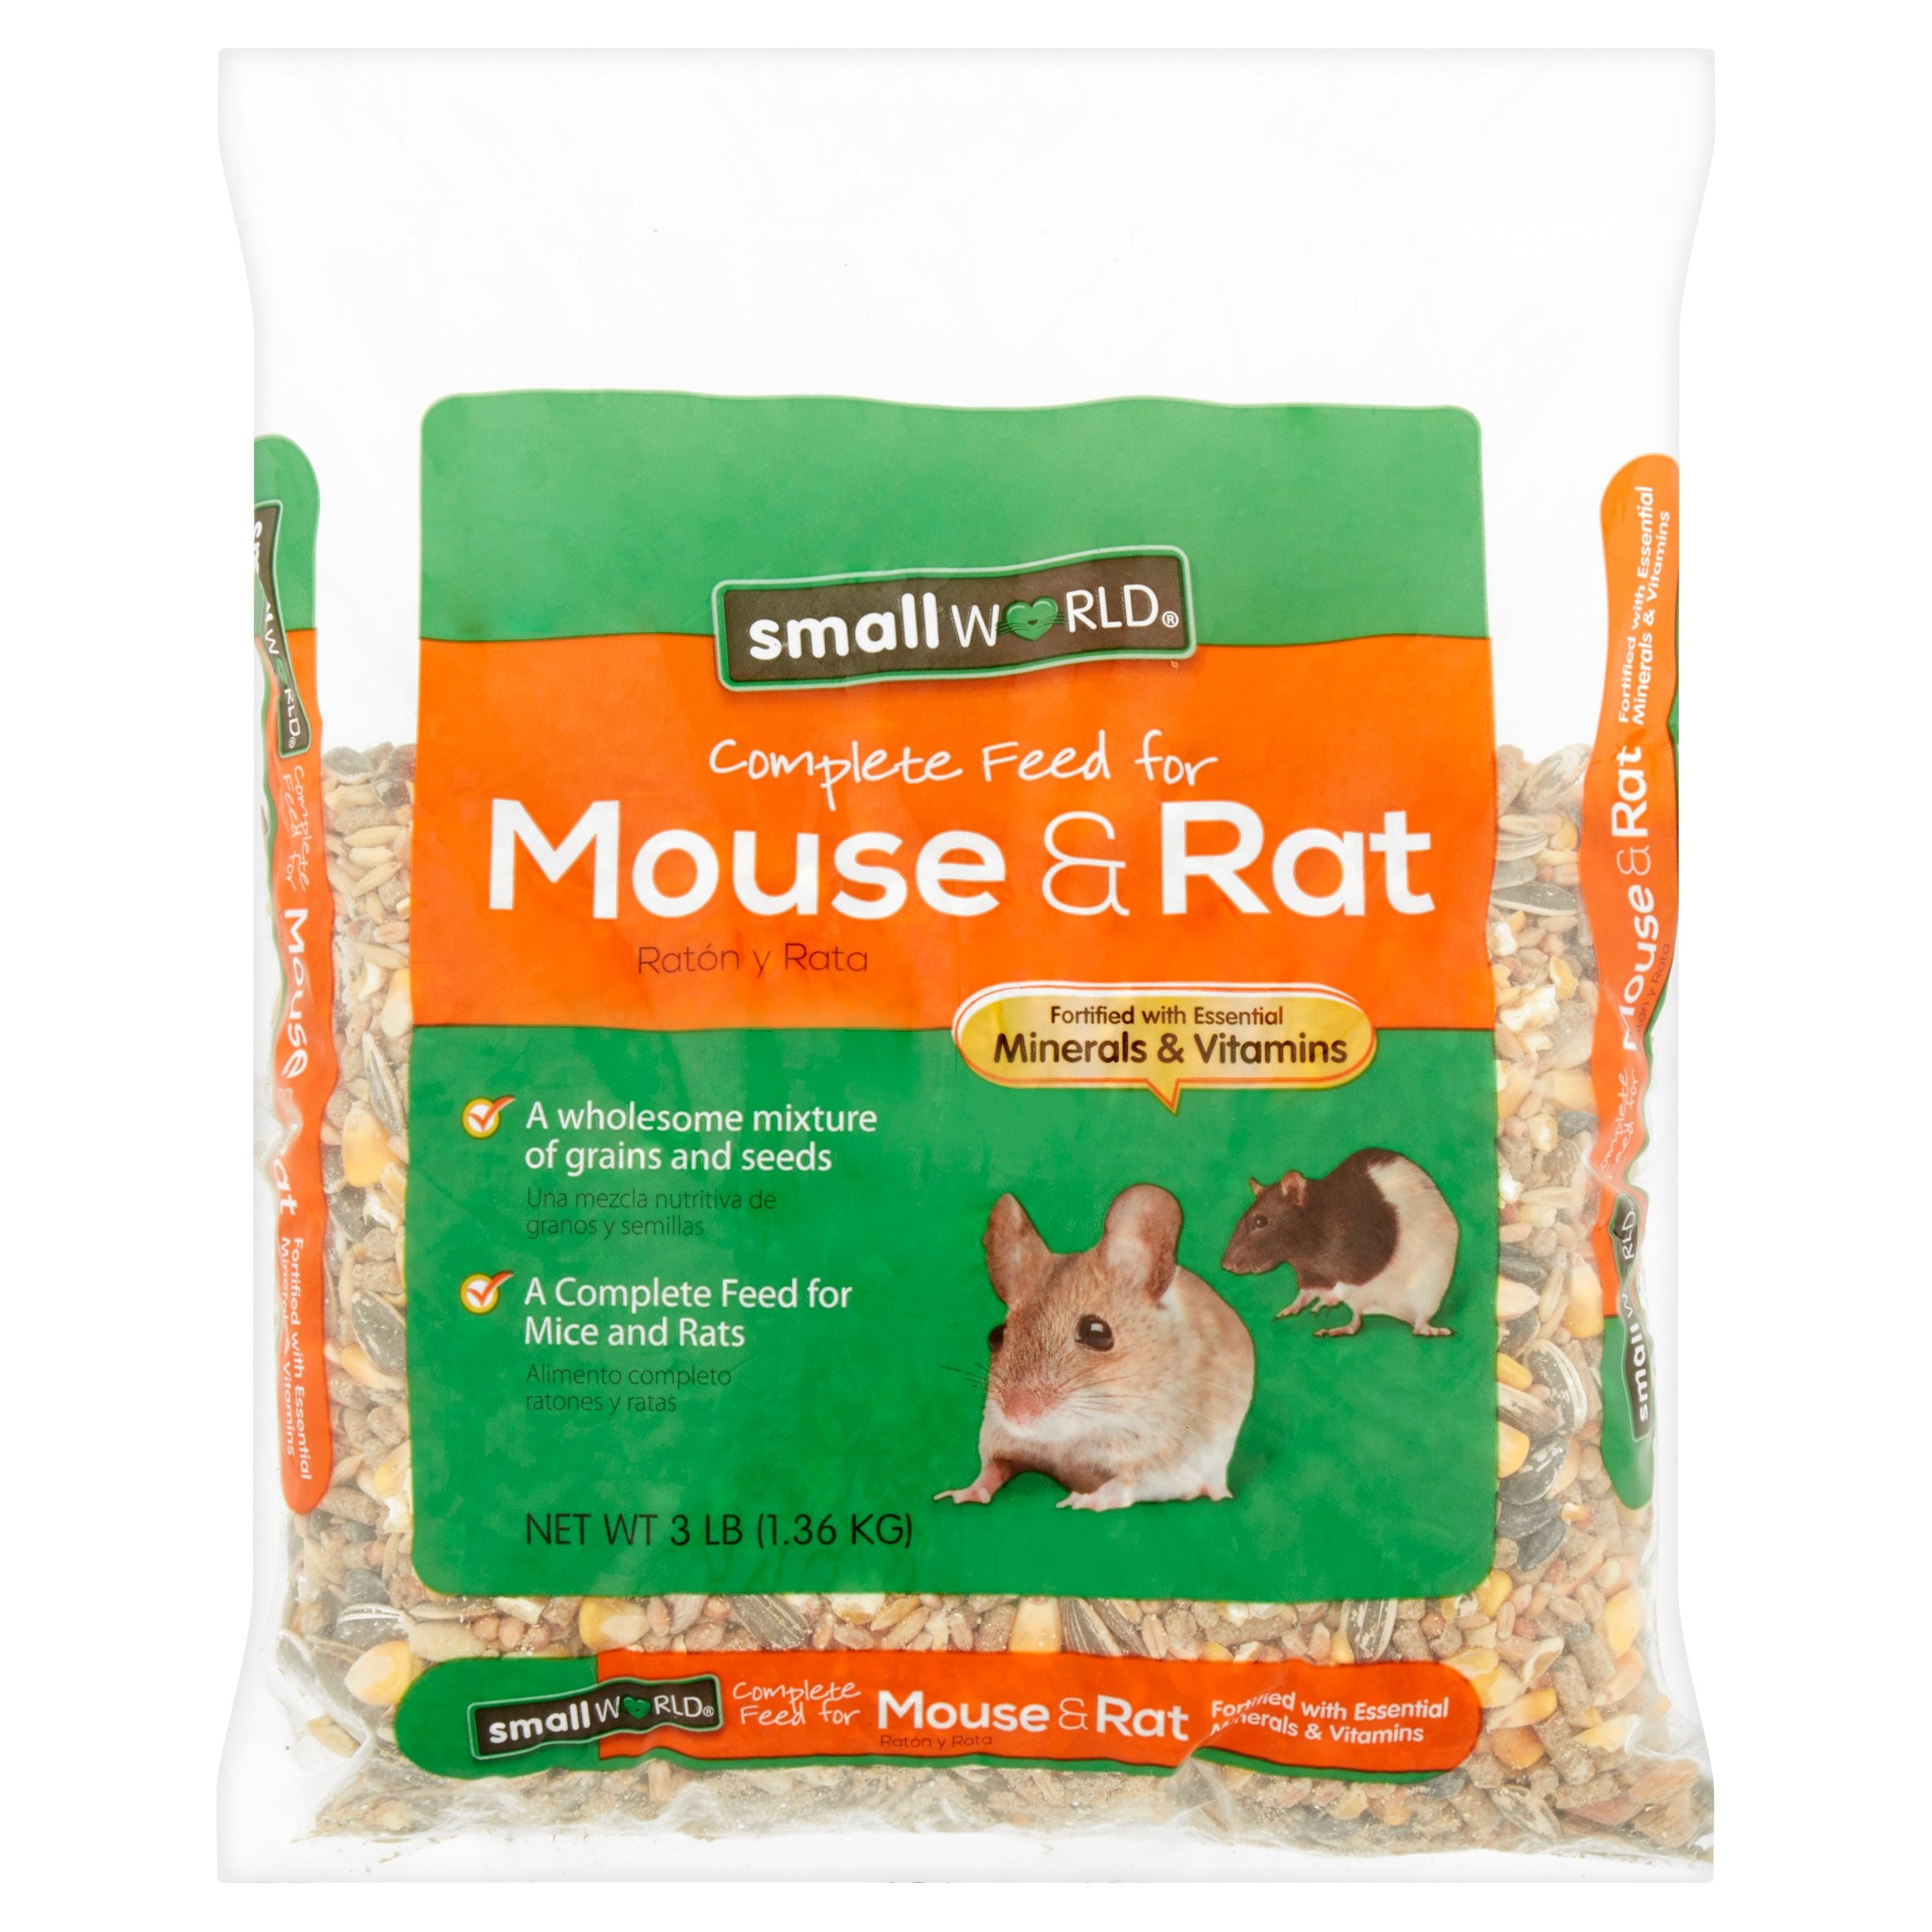 Small World Carnival Complete Feed For Mice & Rats, 3 lbs.